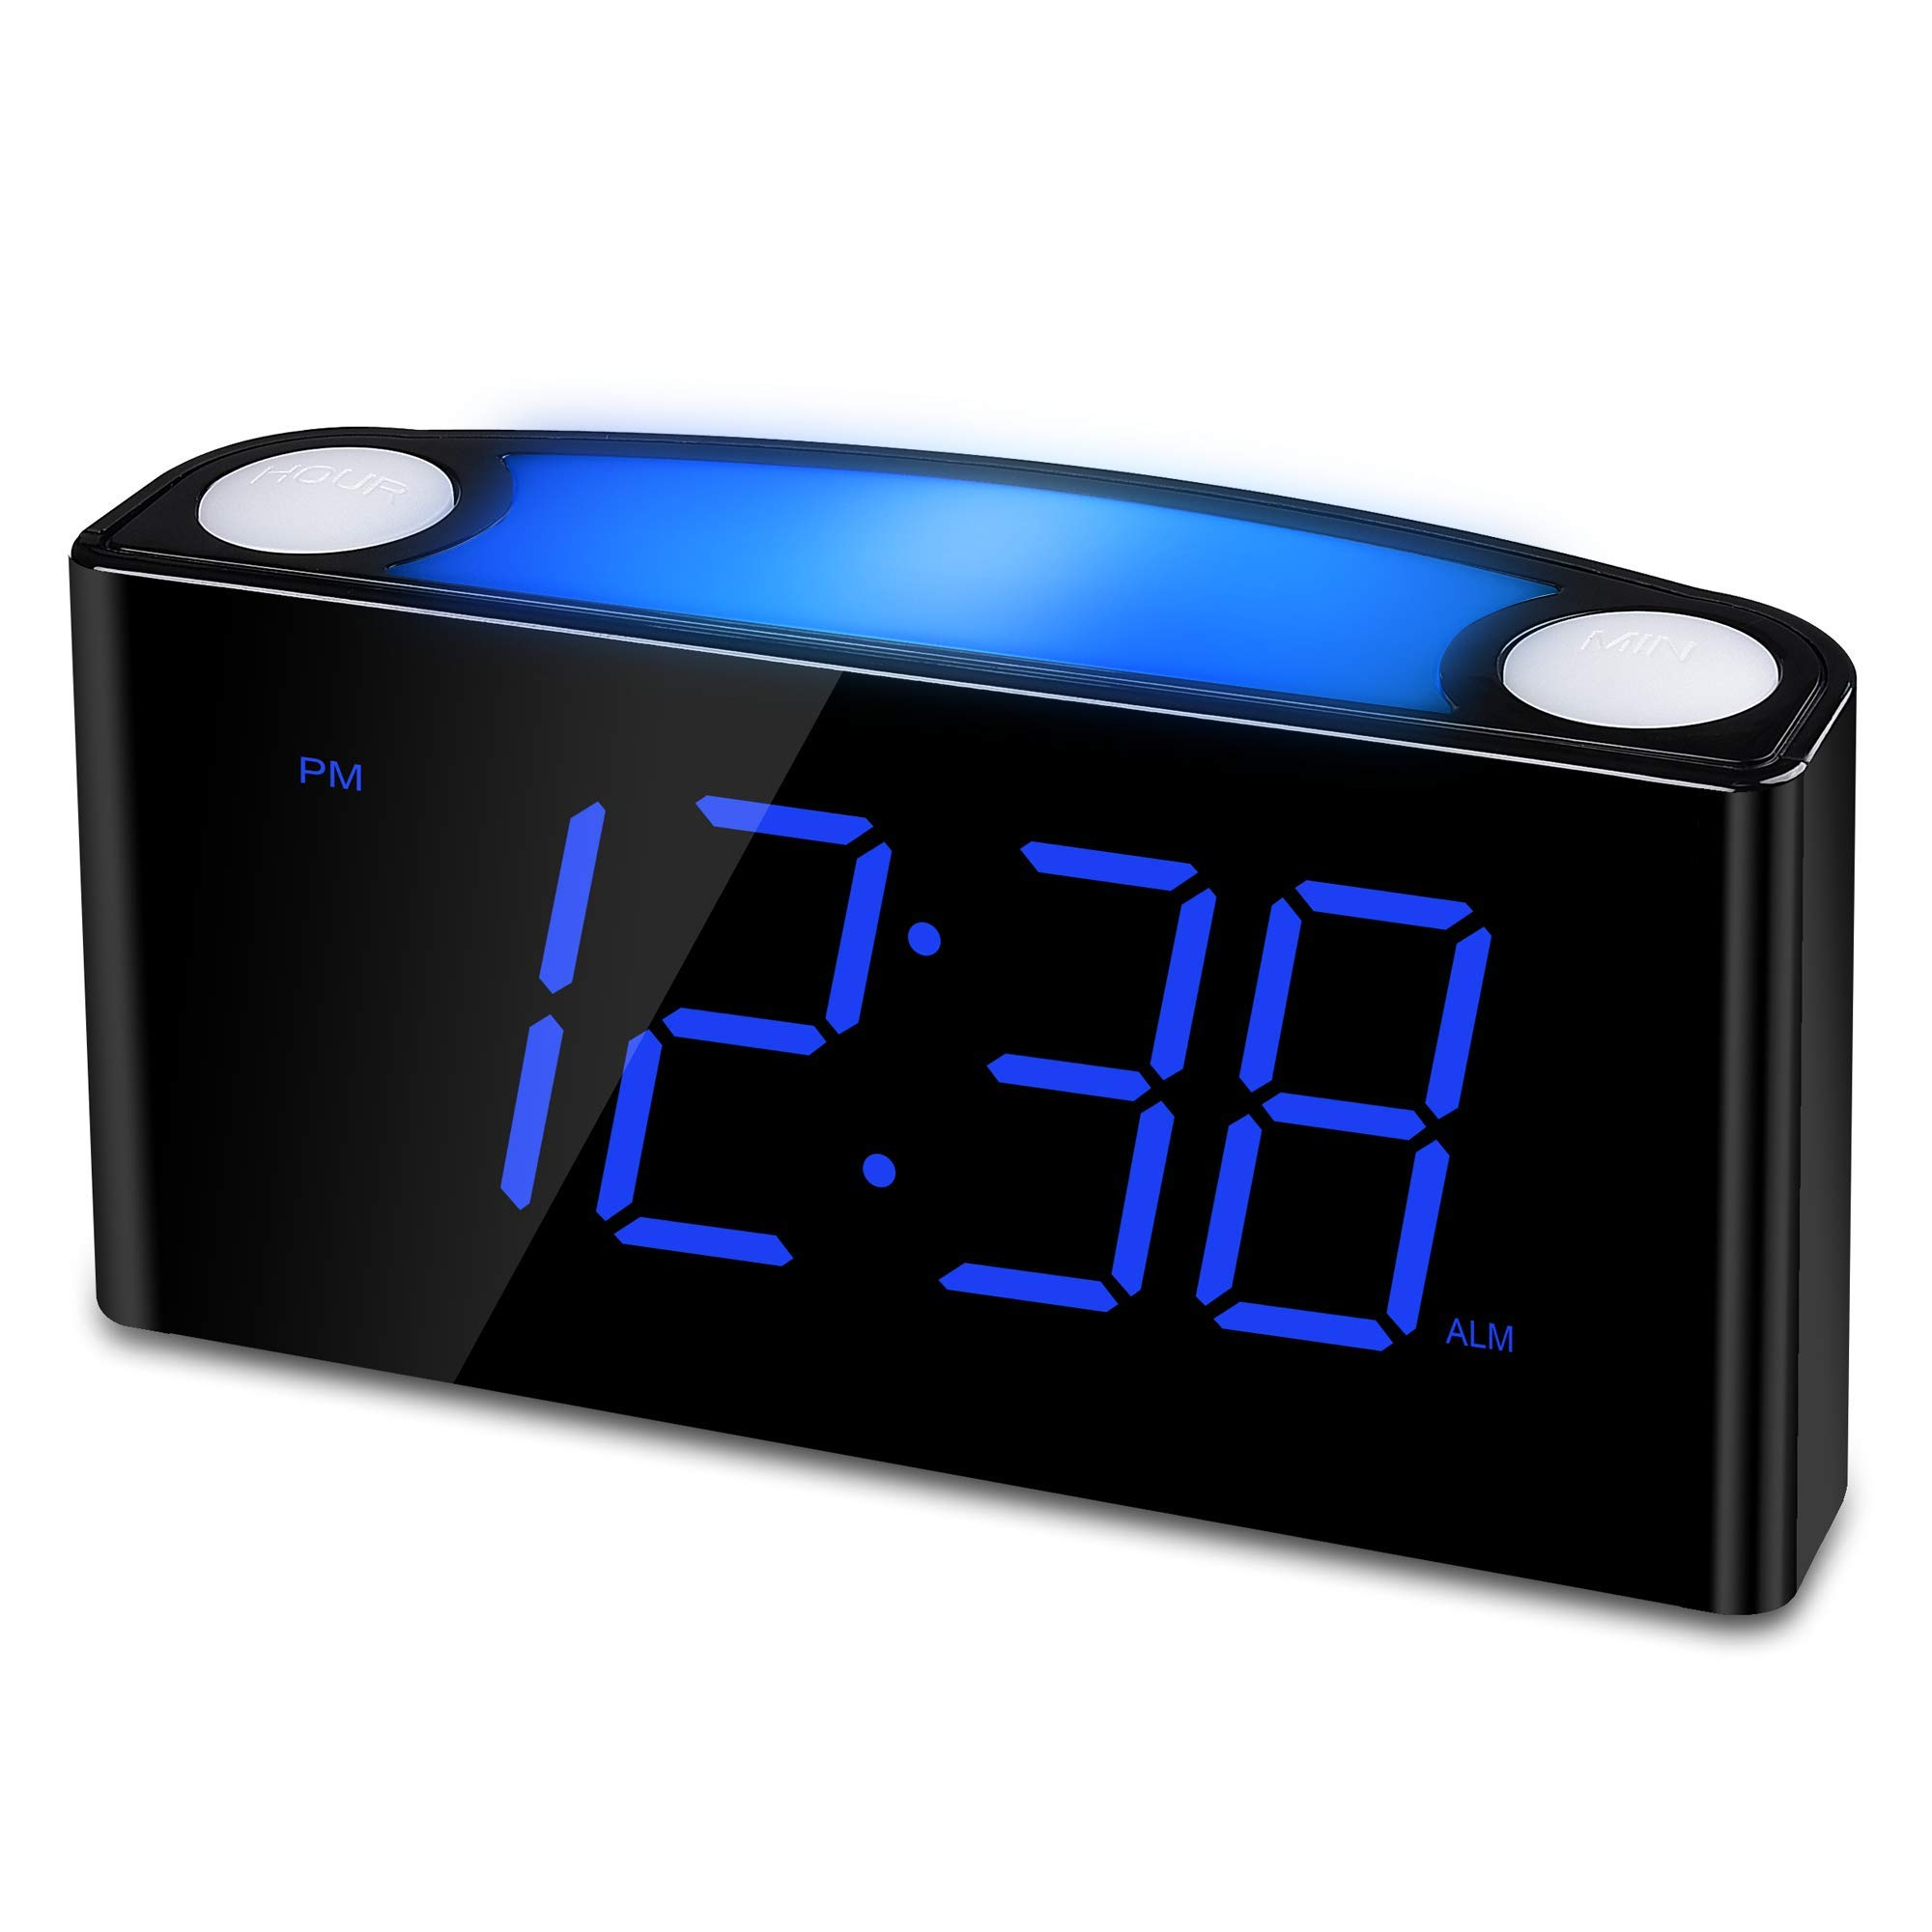 Nice alarm clock with cool blue numbers